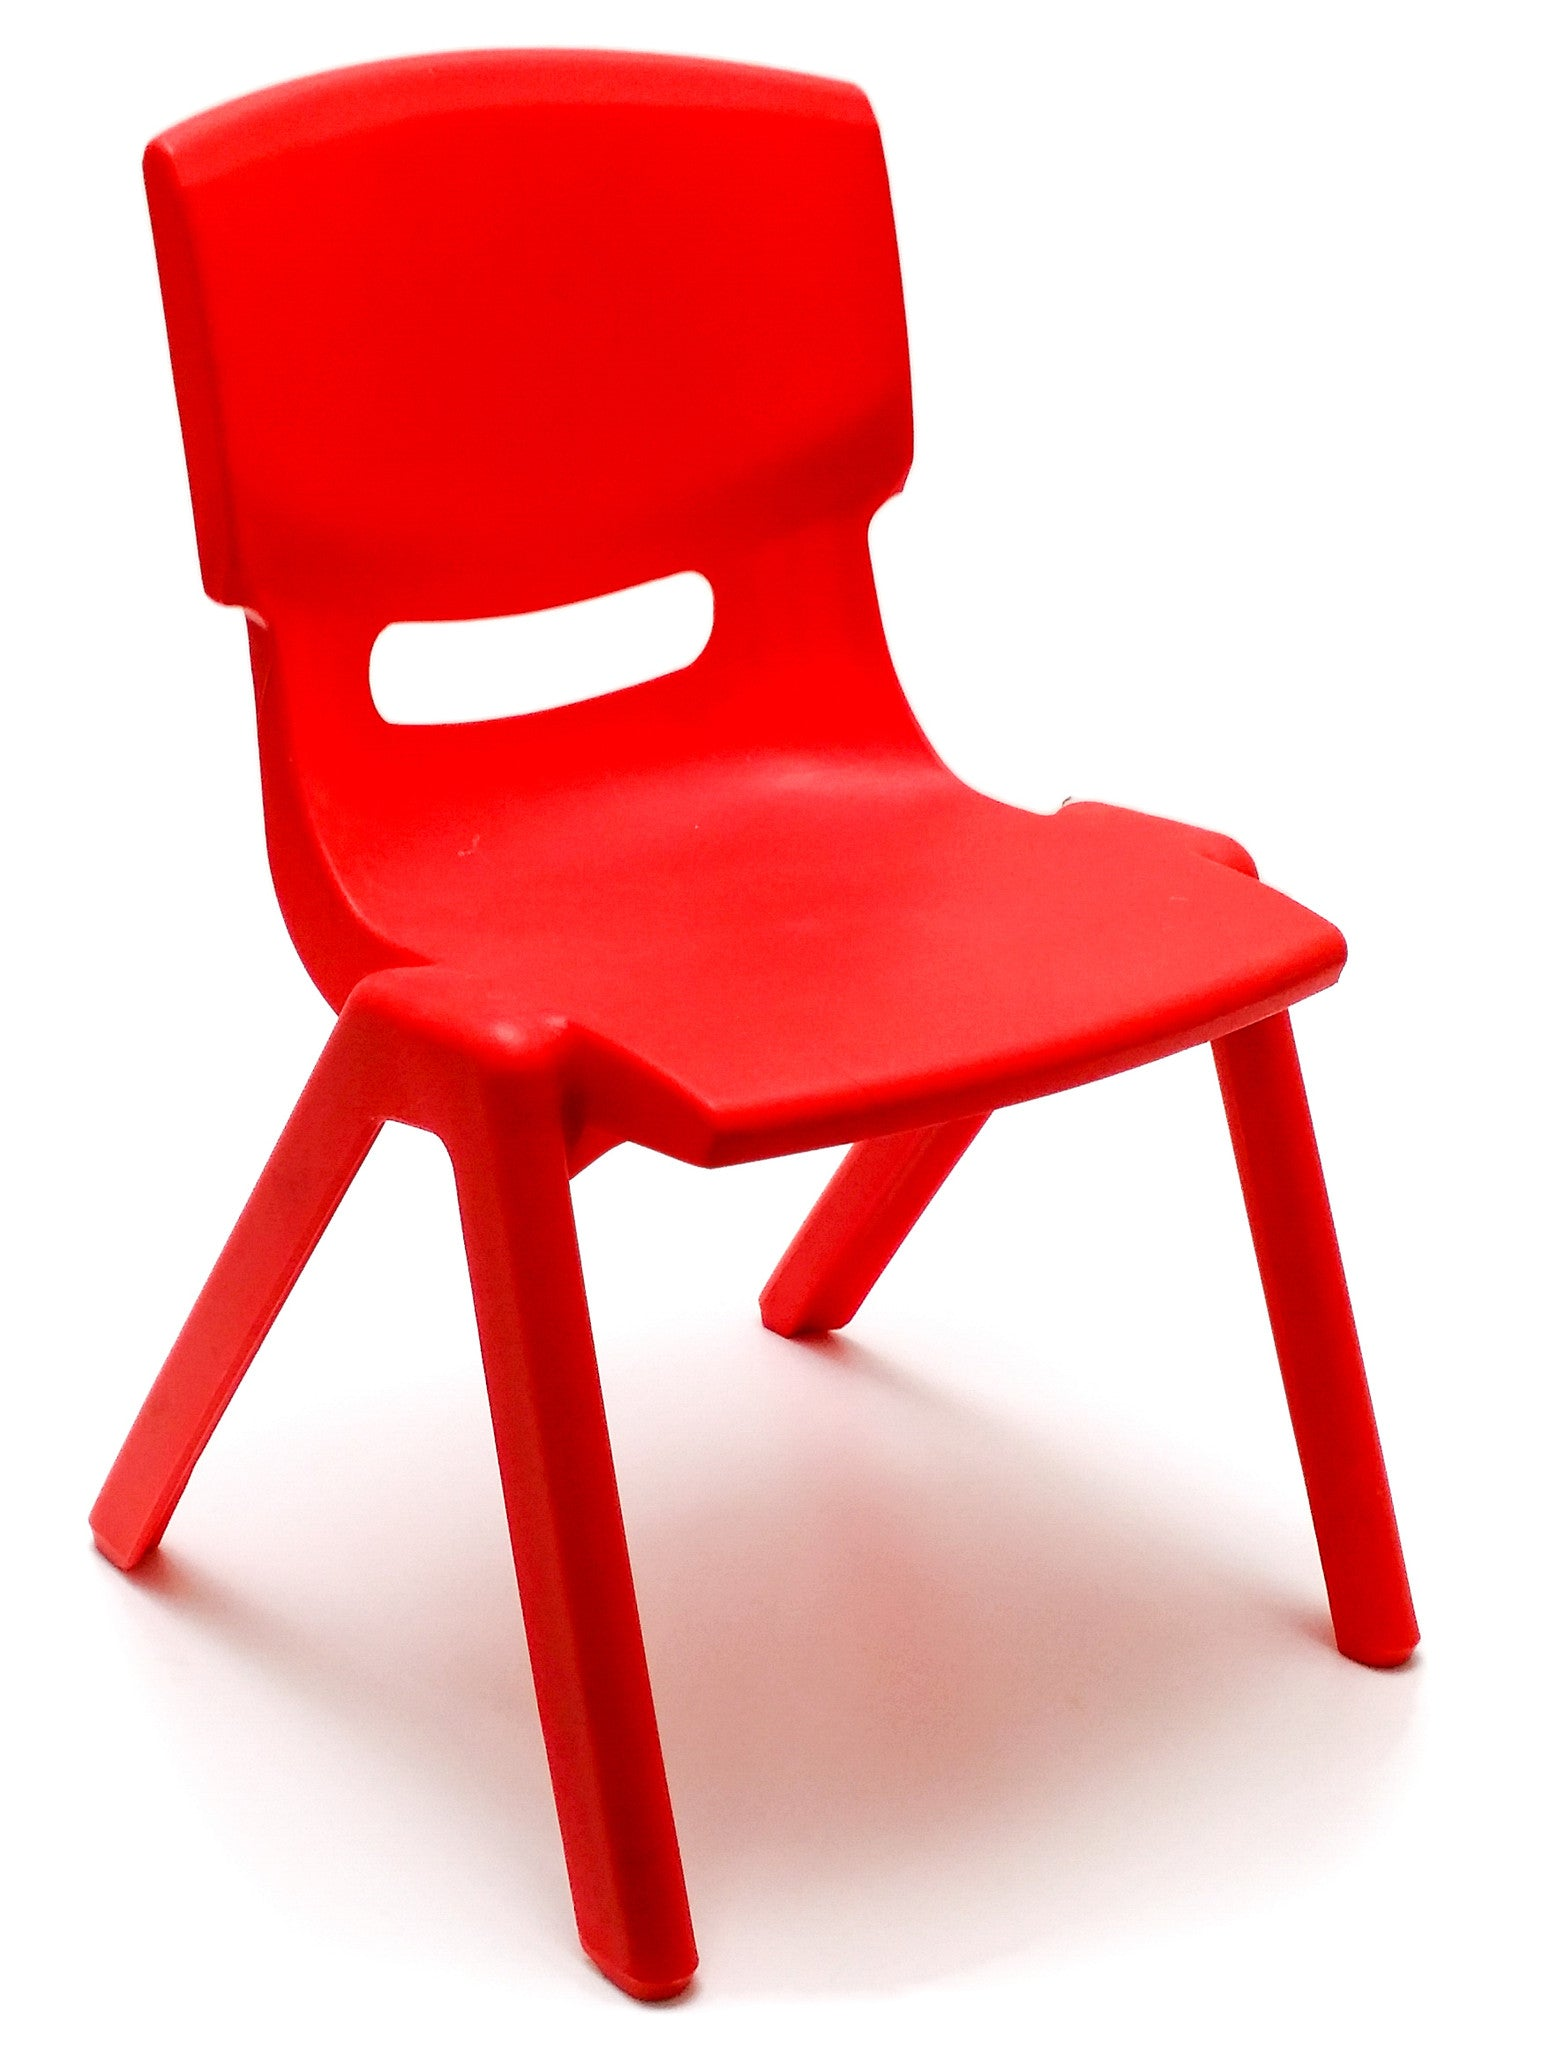 VIAHART Plastic Children's Chair